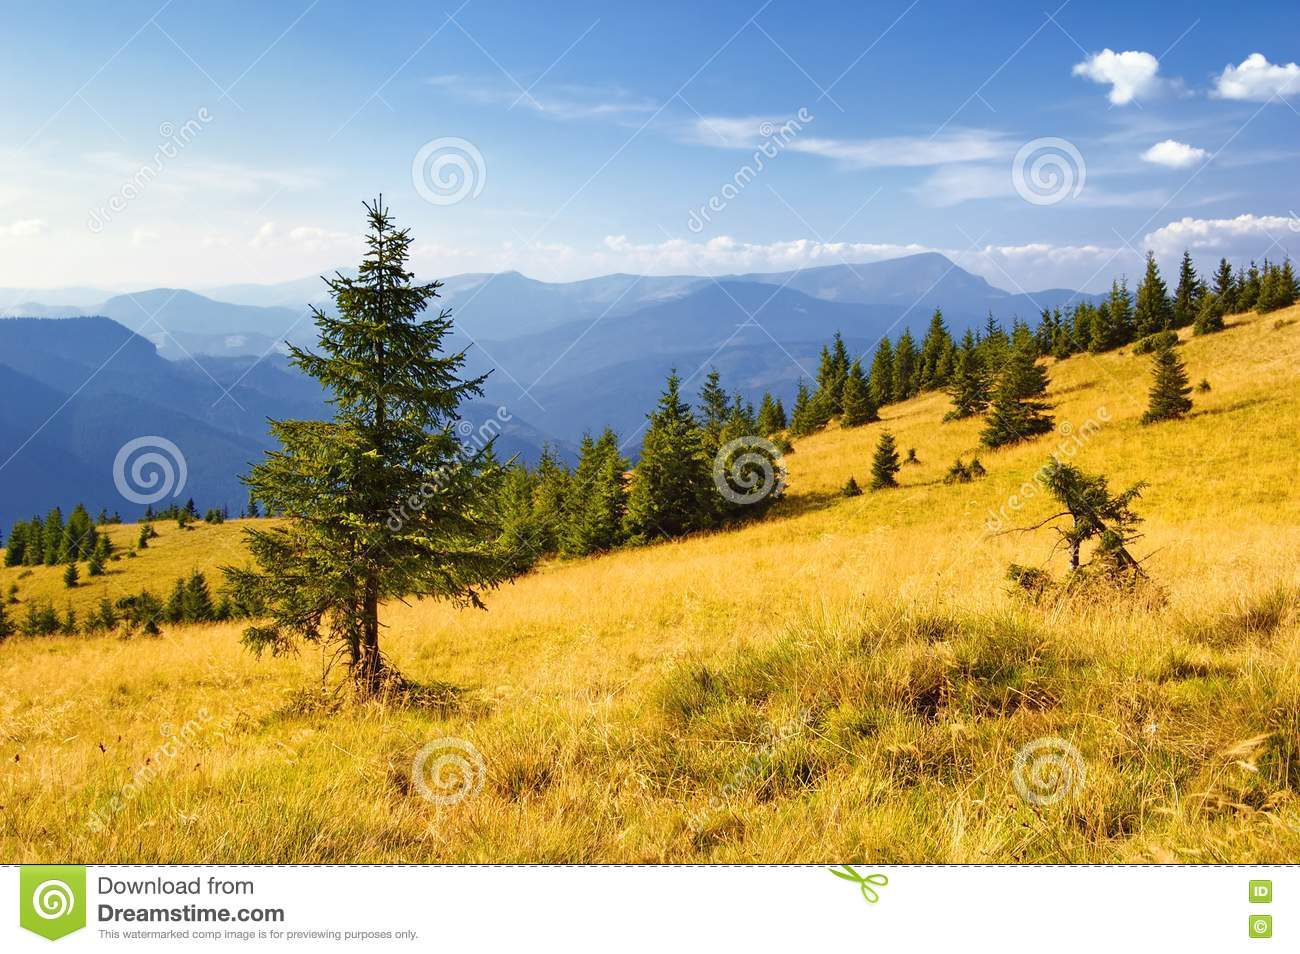 Summer Mountain Landscape Royalty Free Stock Photography - Image ...: becuo.com/summer-mountain-landscape